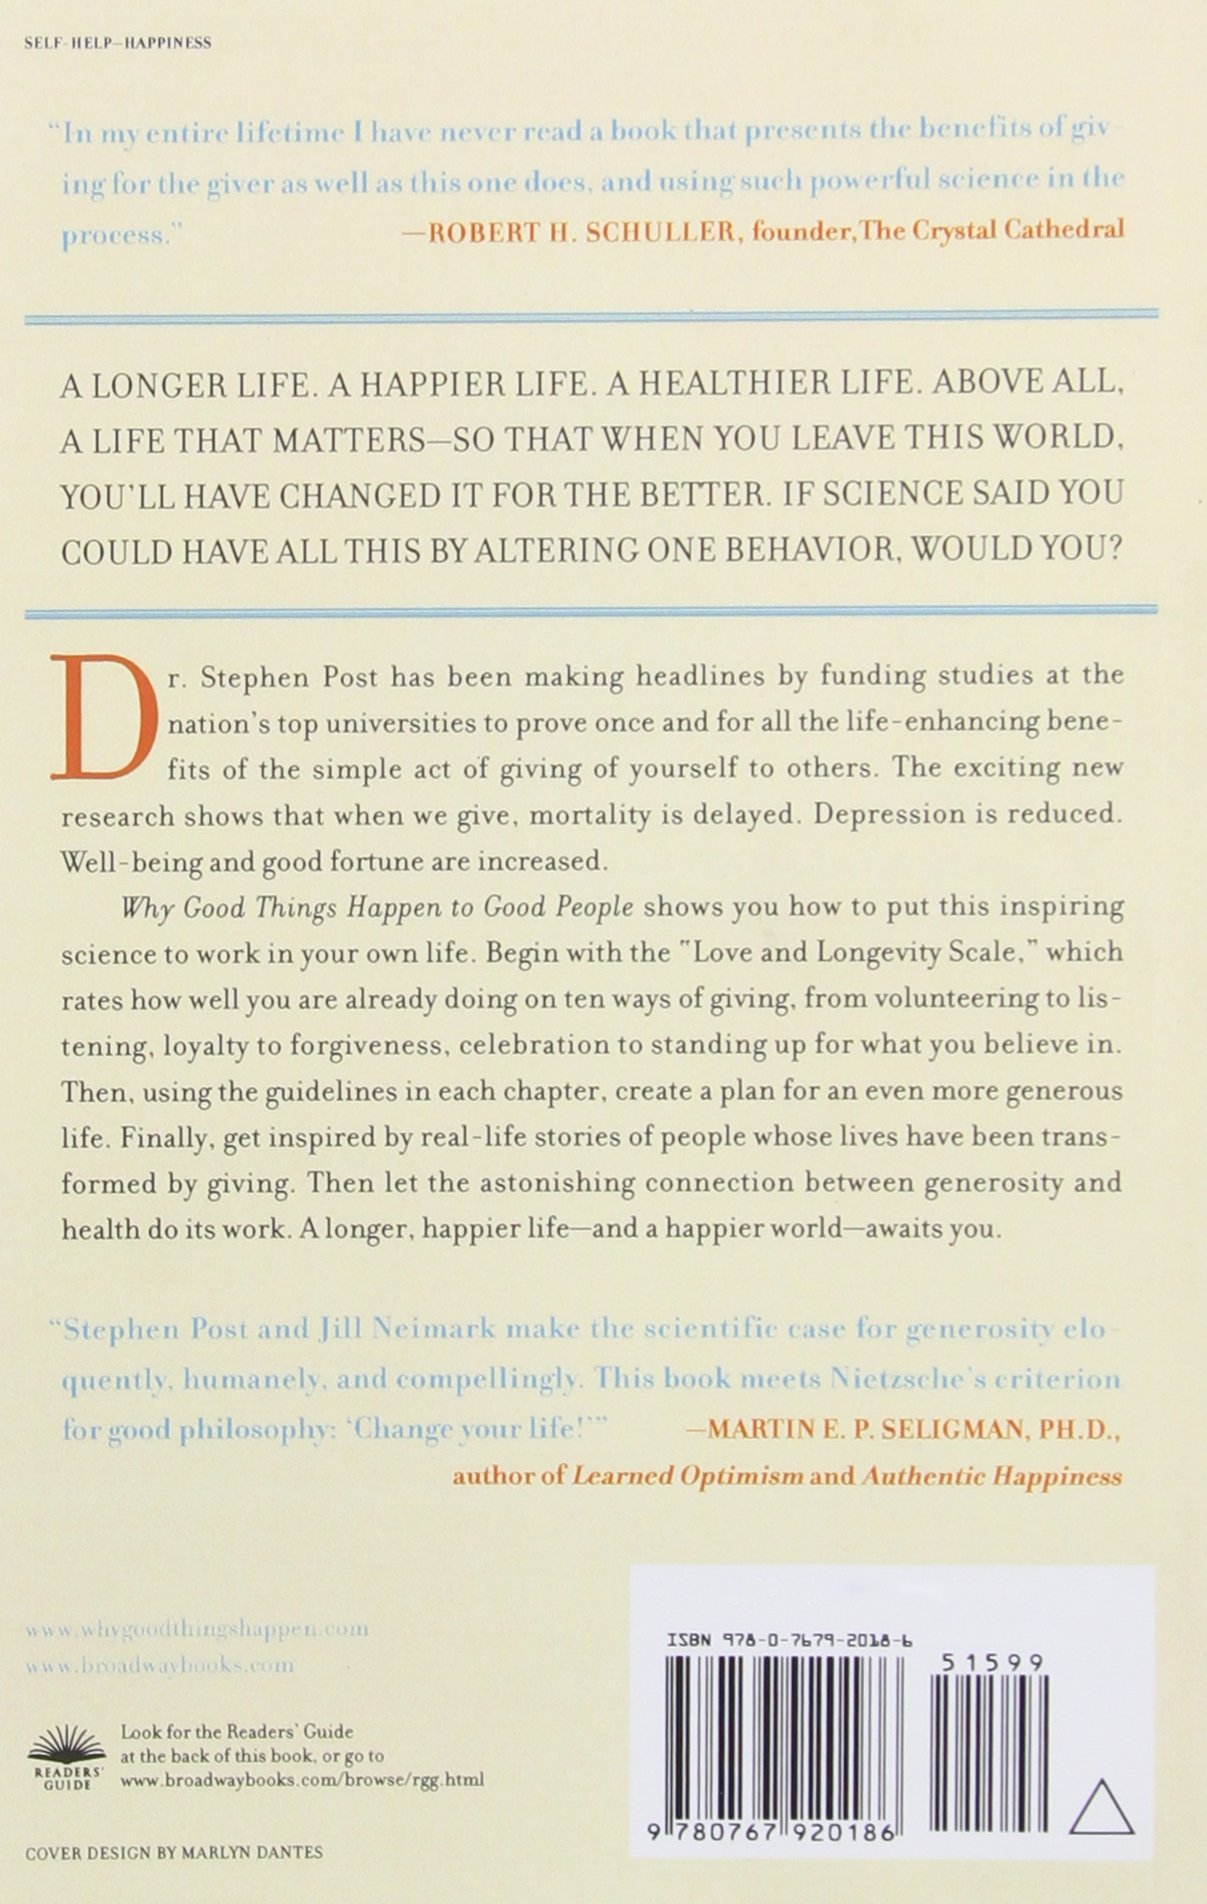 Why Good Things Happen To Good People: How To Live A Longer, Healthier,  Happier Life By The Simple Act Of Giving: Stephen Post, Jill Neimark, Otis  Moss Jr: